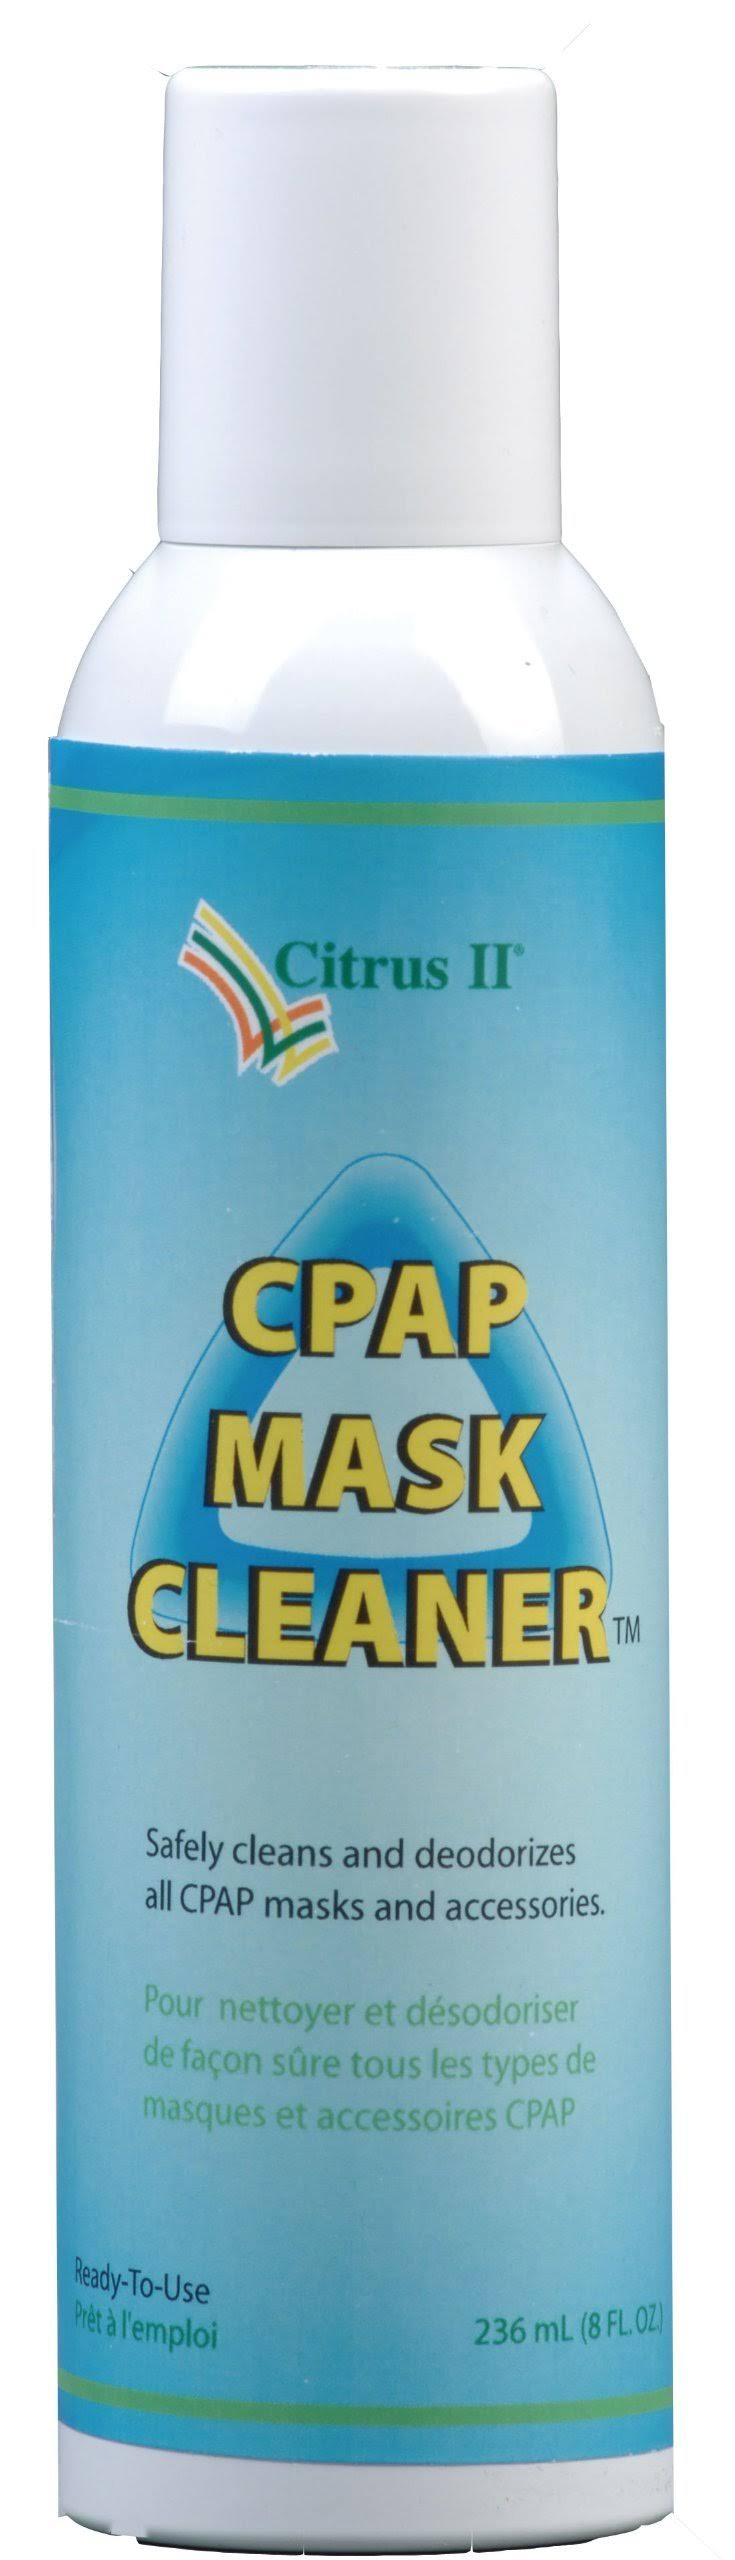 Citrus II CPAP Mask Cleaner - 8oz